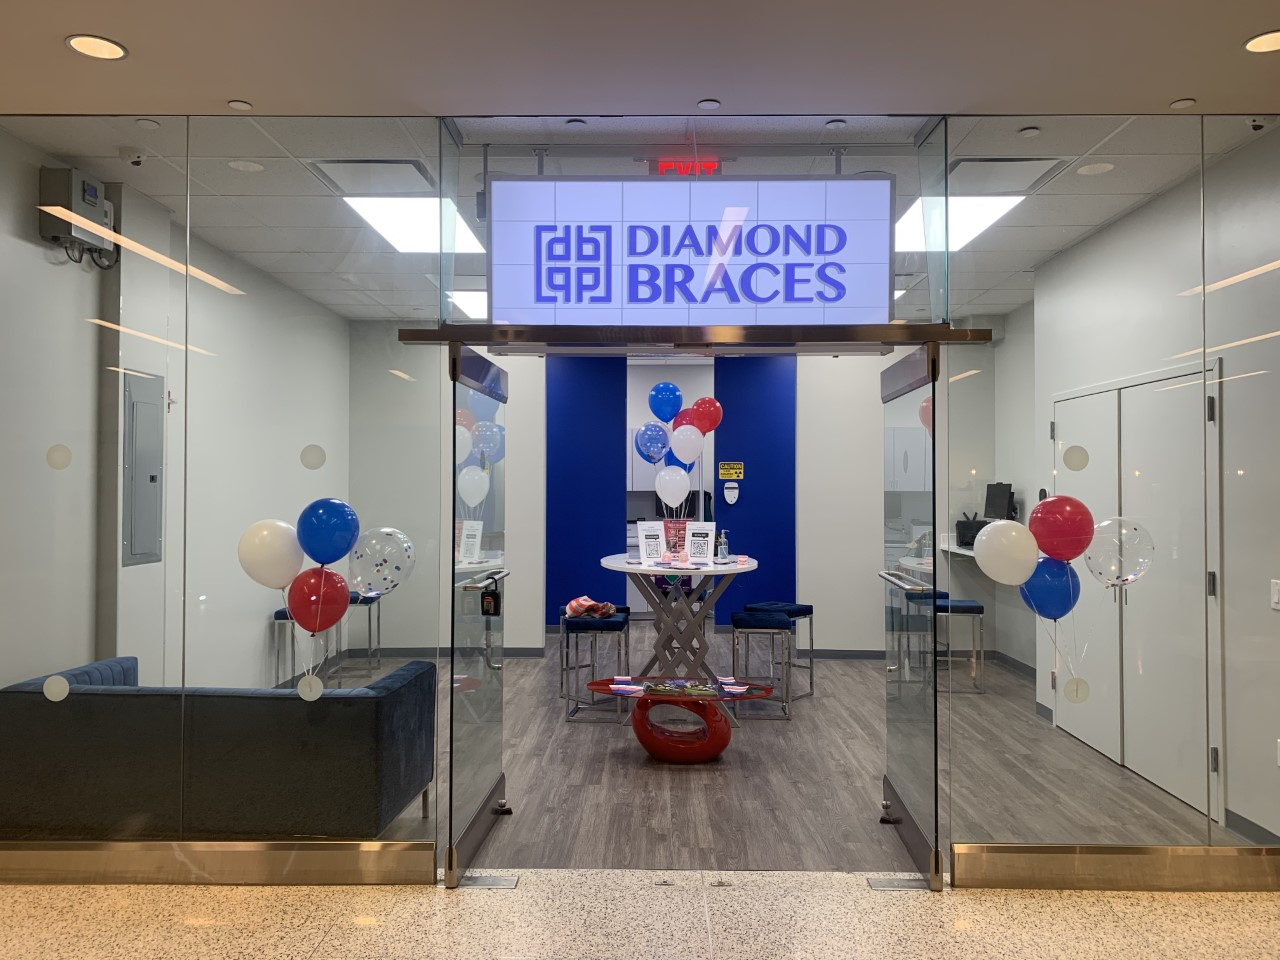 Diamond Braces New Orthodontic Scanning and Consultation Center NYC